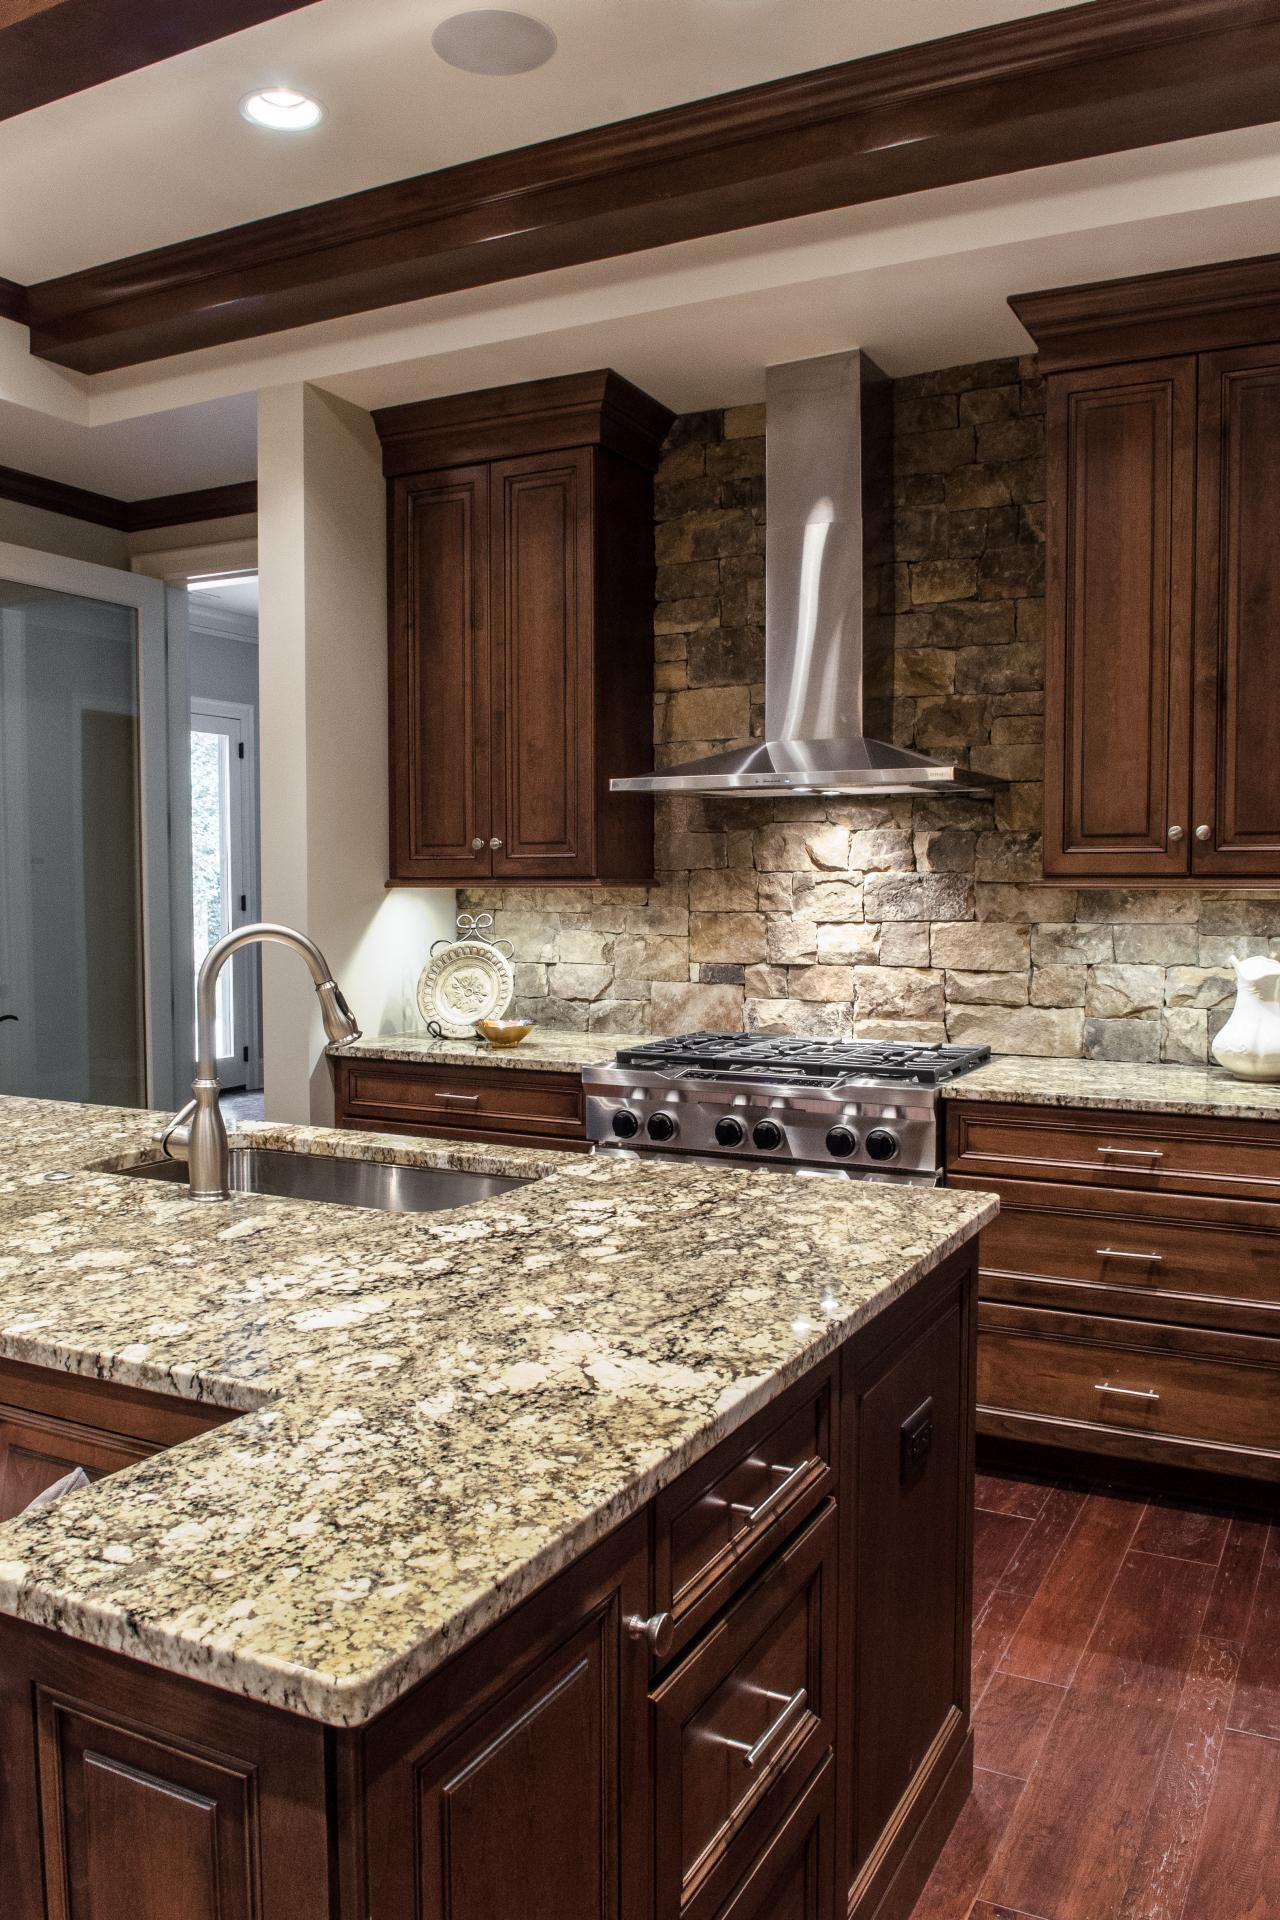 Custom Wood Cabinets And Gray Stone Countertops Are Top Of The